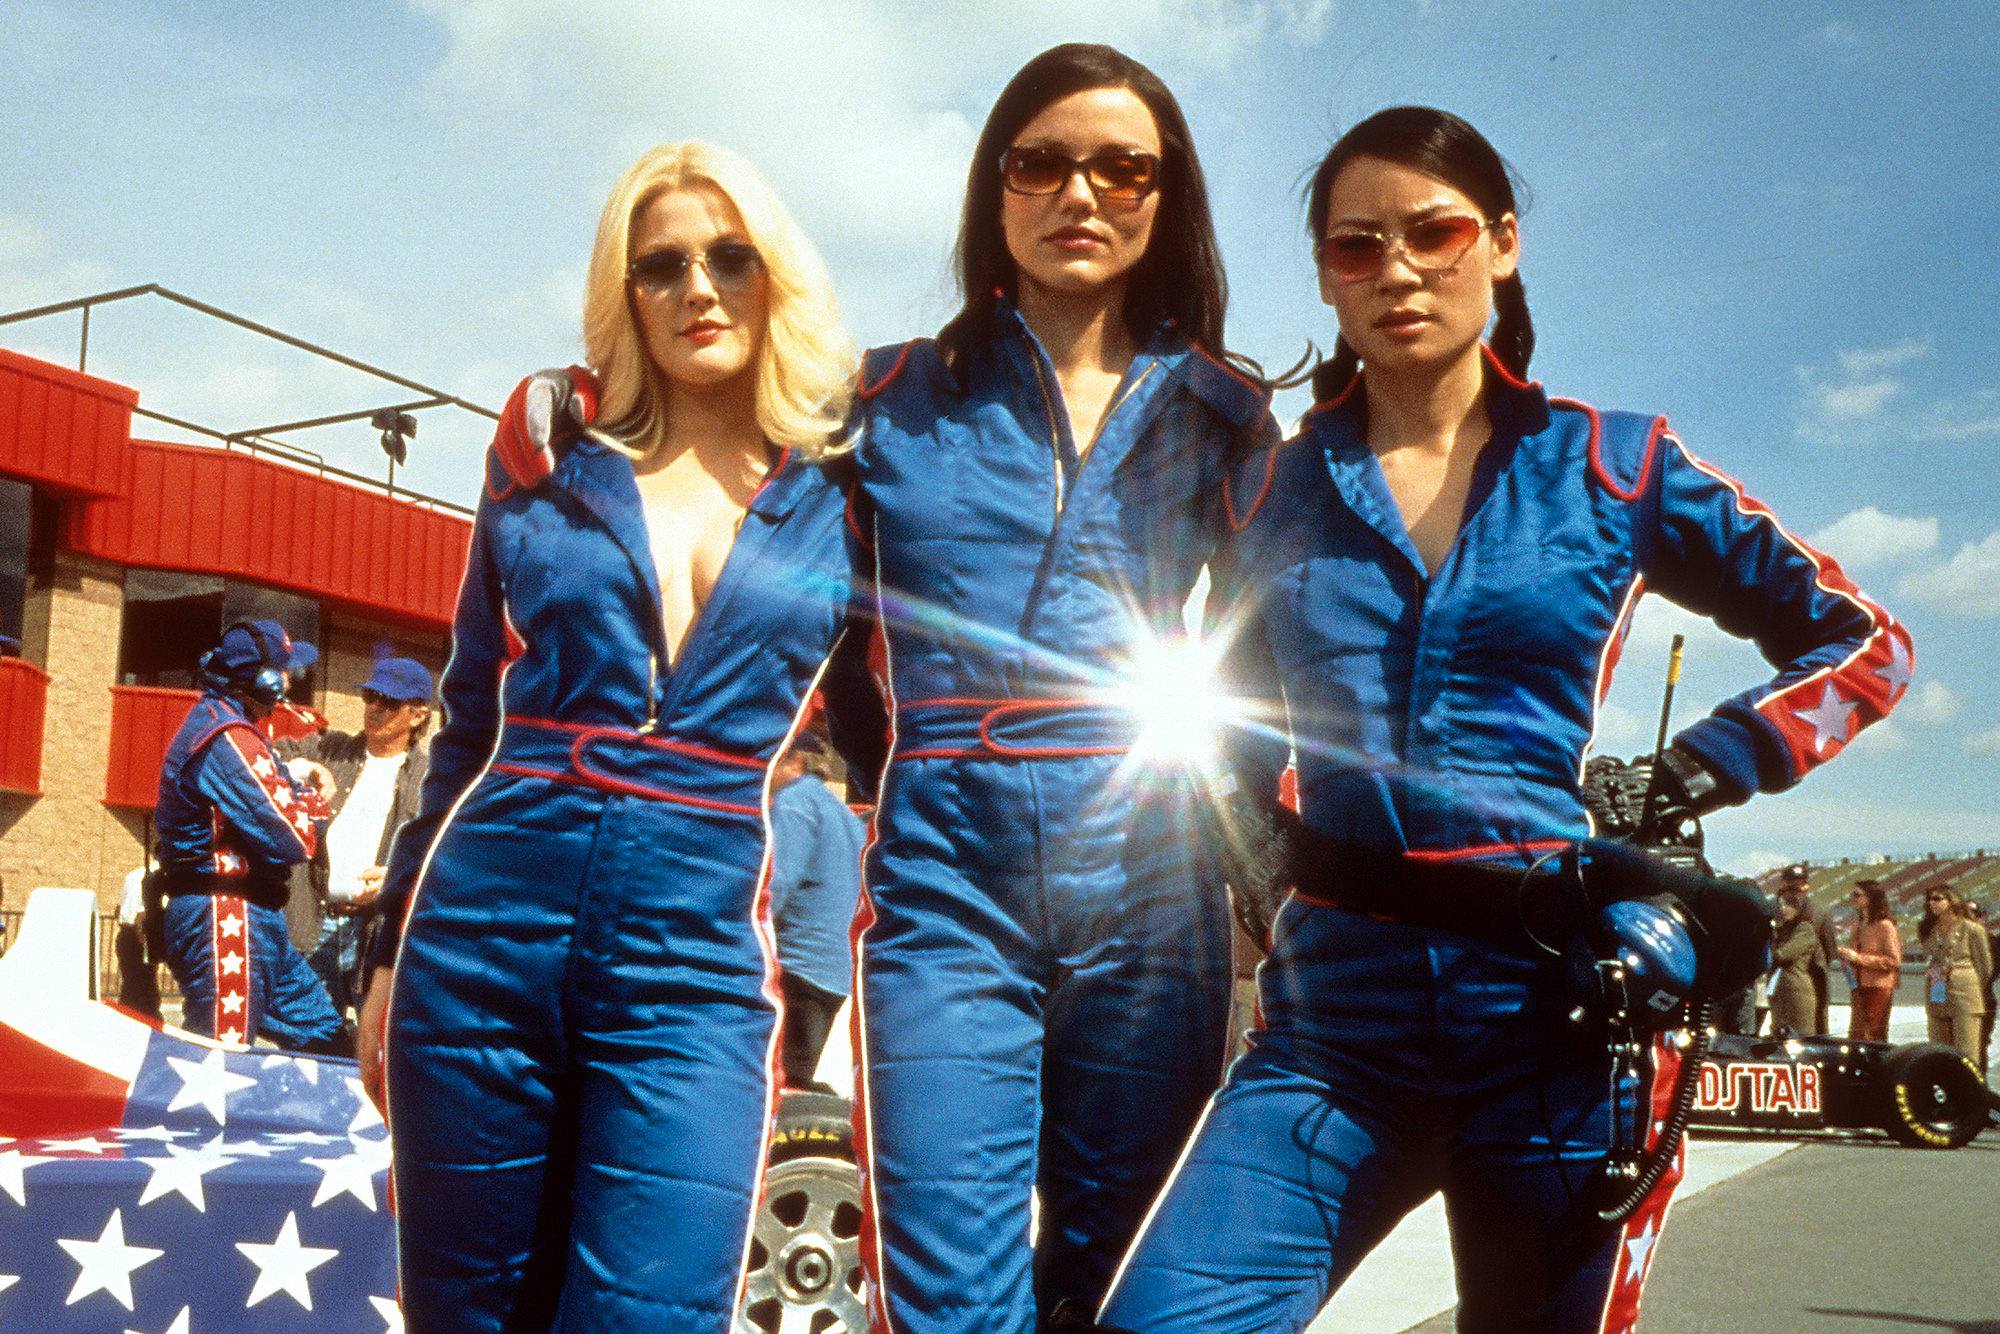 Drew Barrymore, Cameron Diaz and Lucy Liu in 'Charlie's Angels' in 2000.